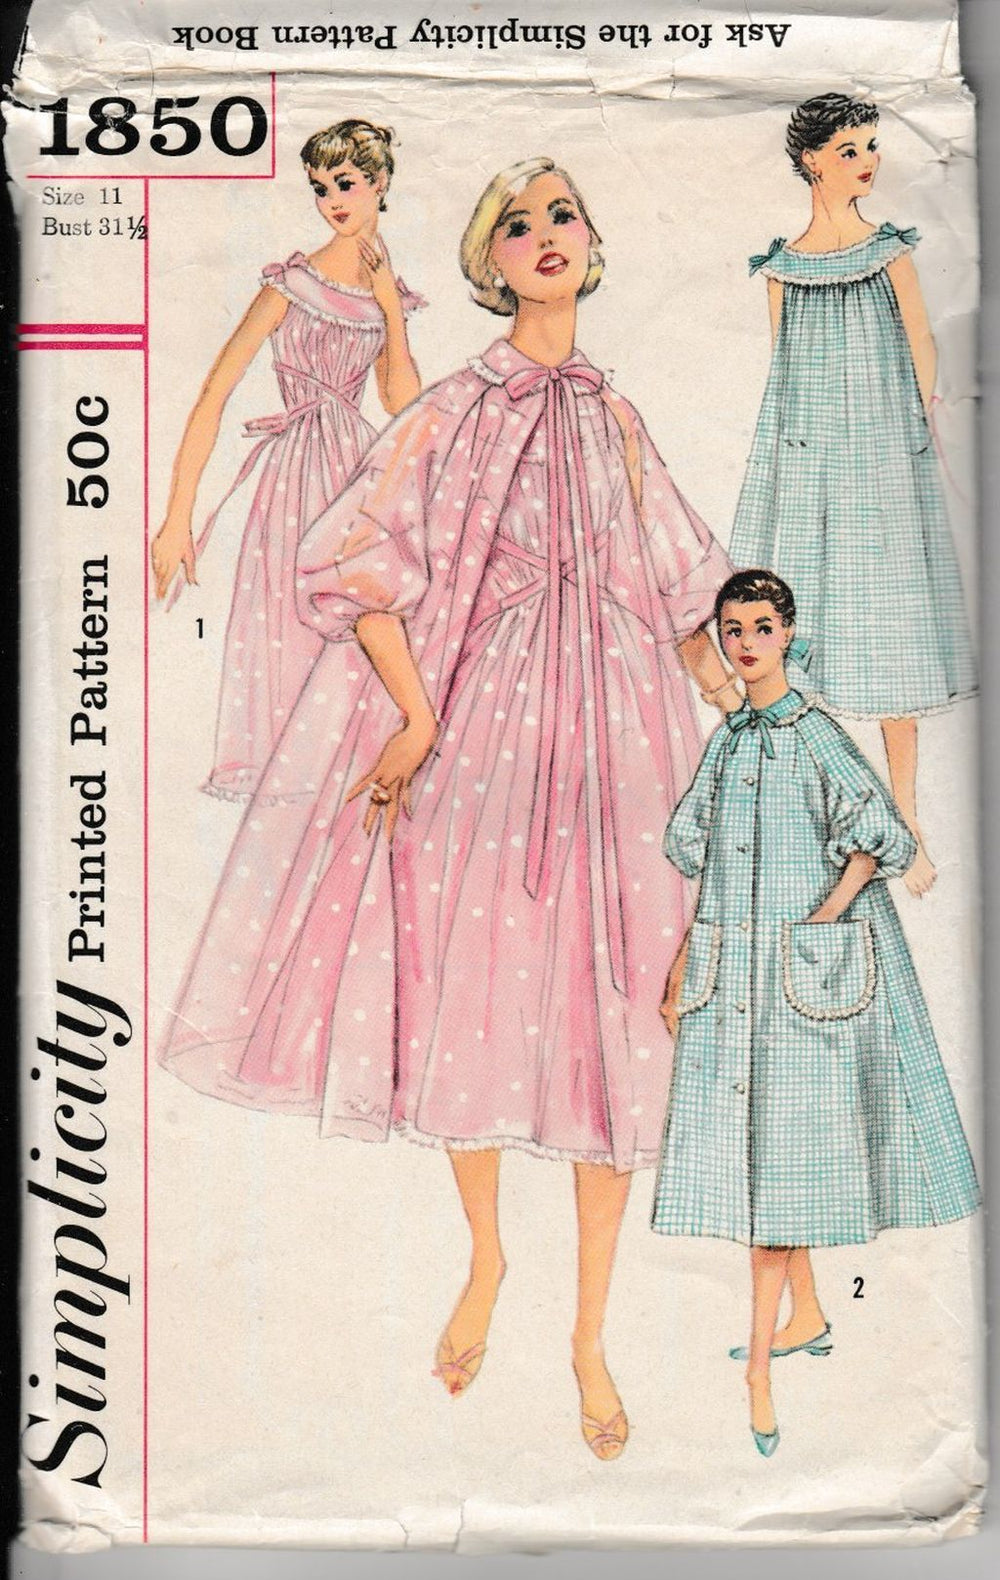 Simplicity 1850 Junior Teen Nightgown Negligee Brunch Coat Lingerie Vintage 1950's Pattern - VintageStitching - Vintage Sewing Patterns